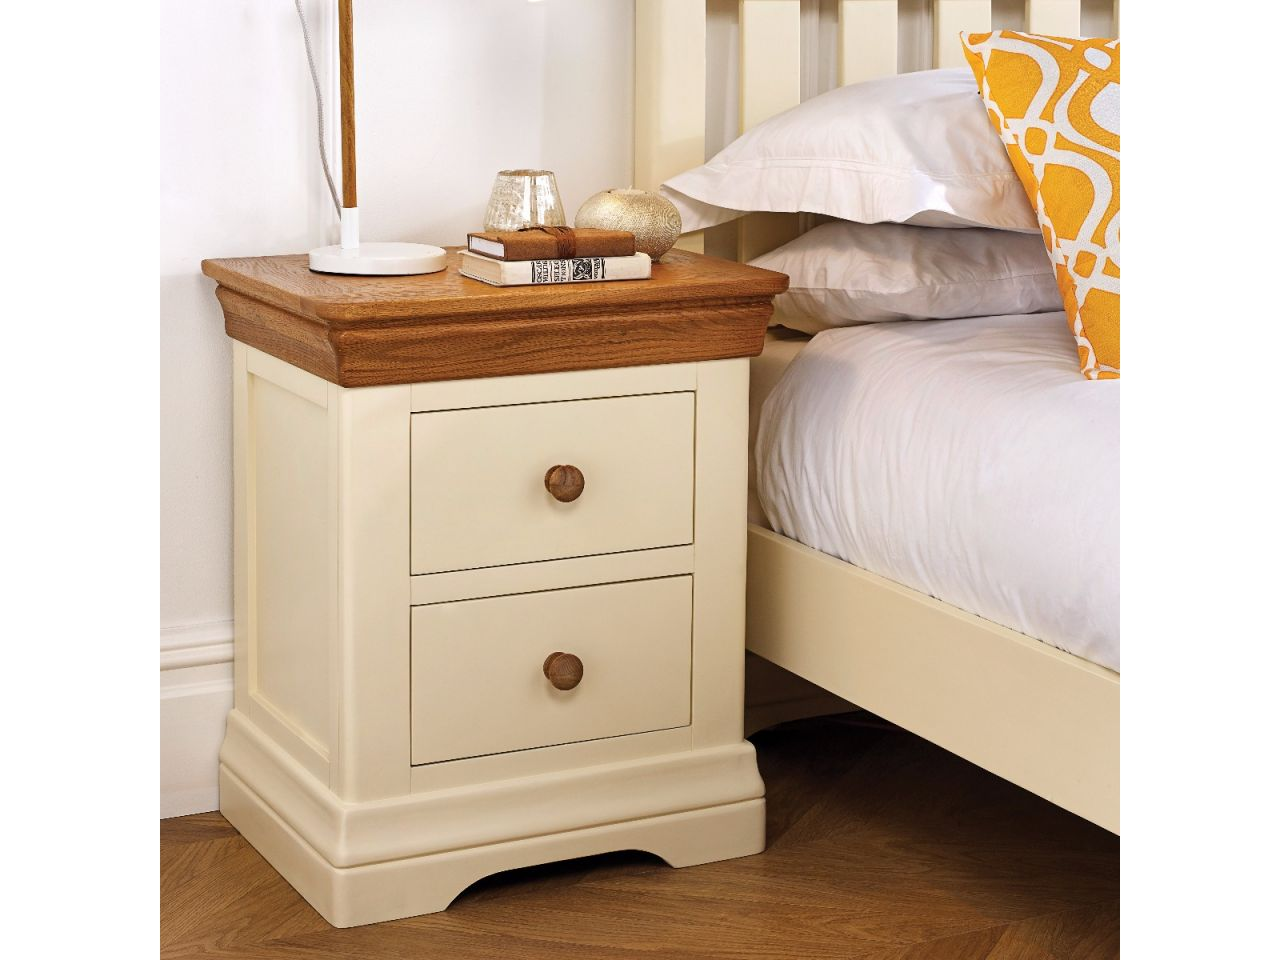 farmho629 farmhouse country oak cream painted bedside table 9